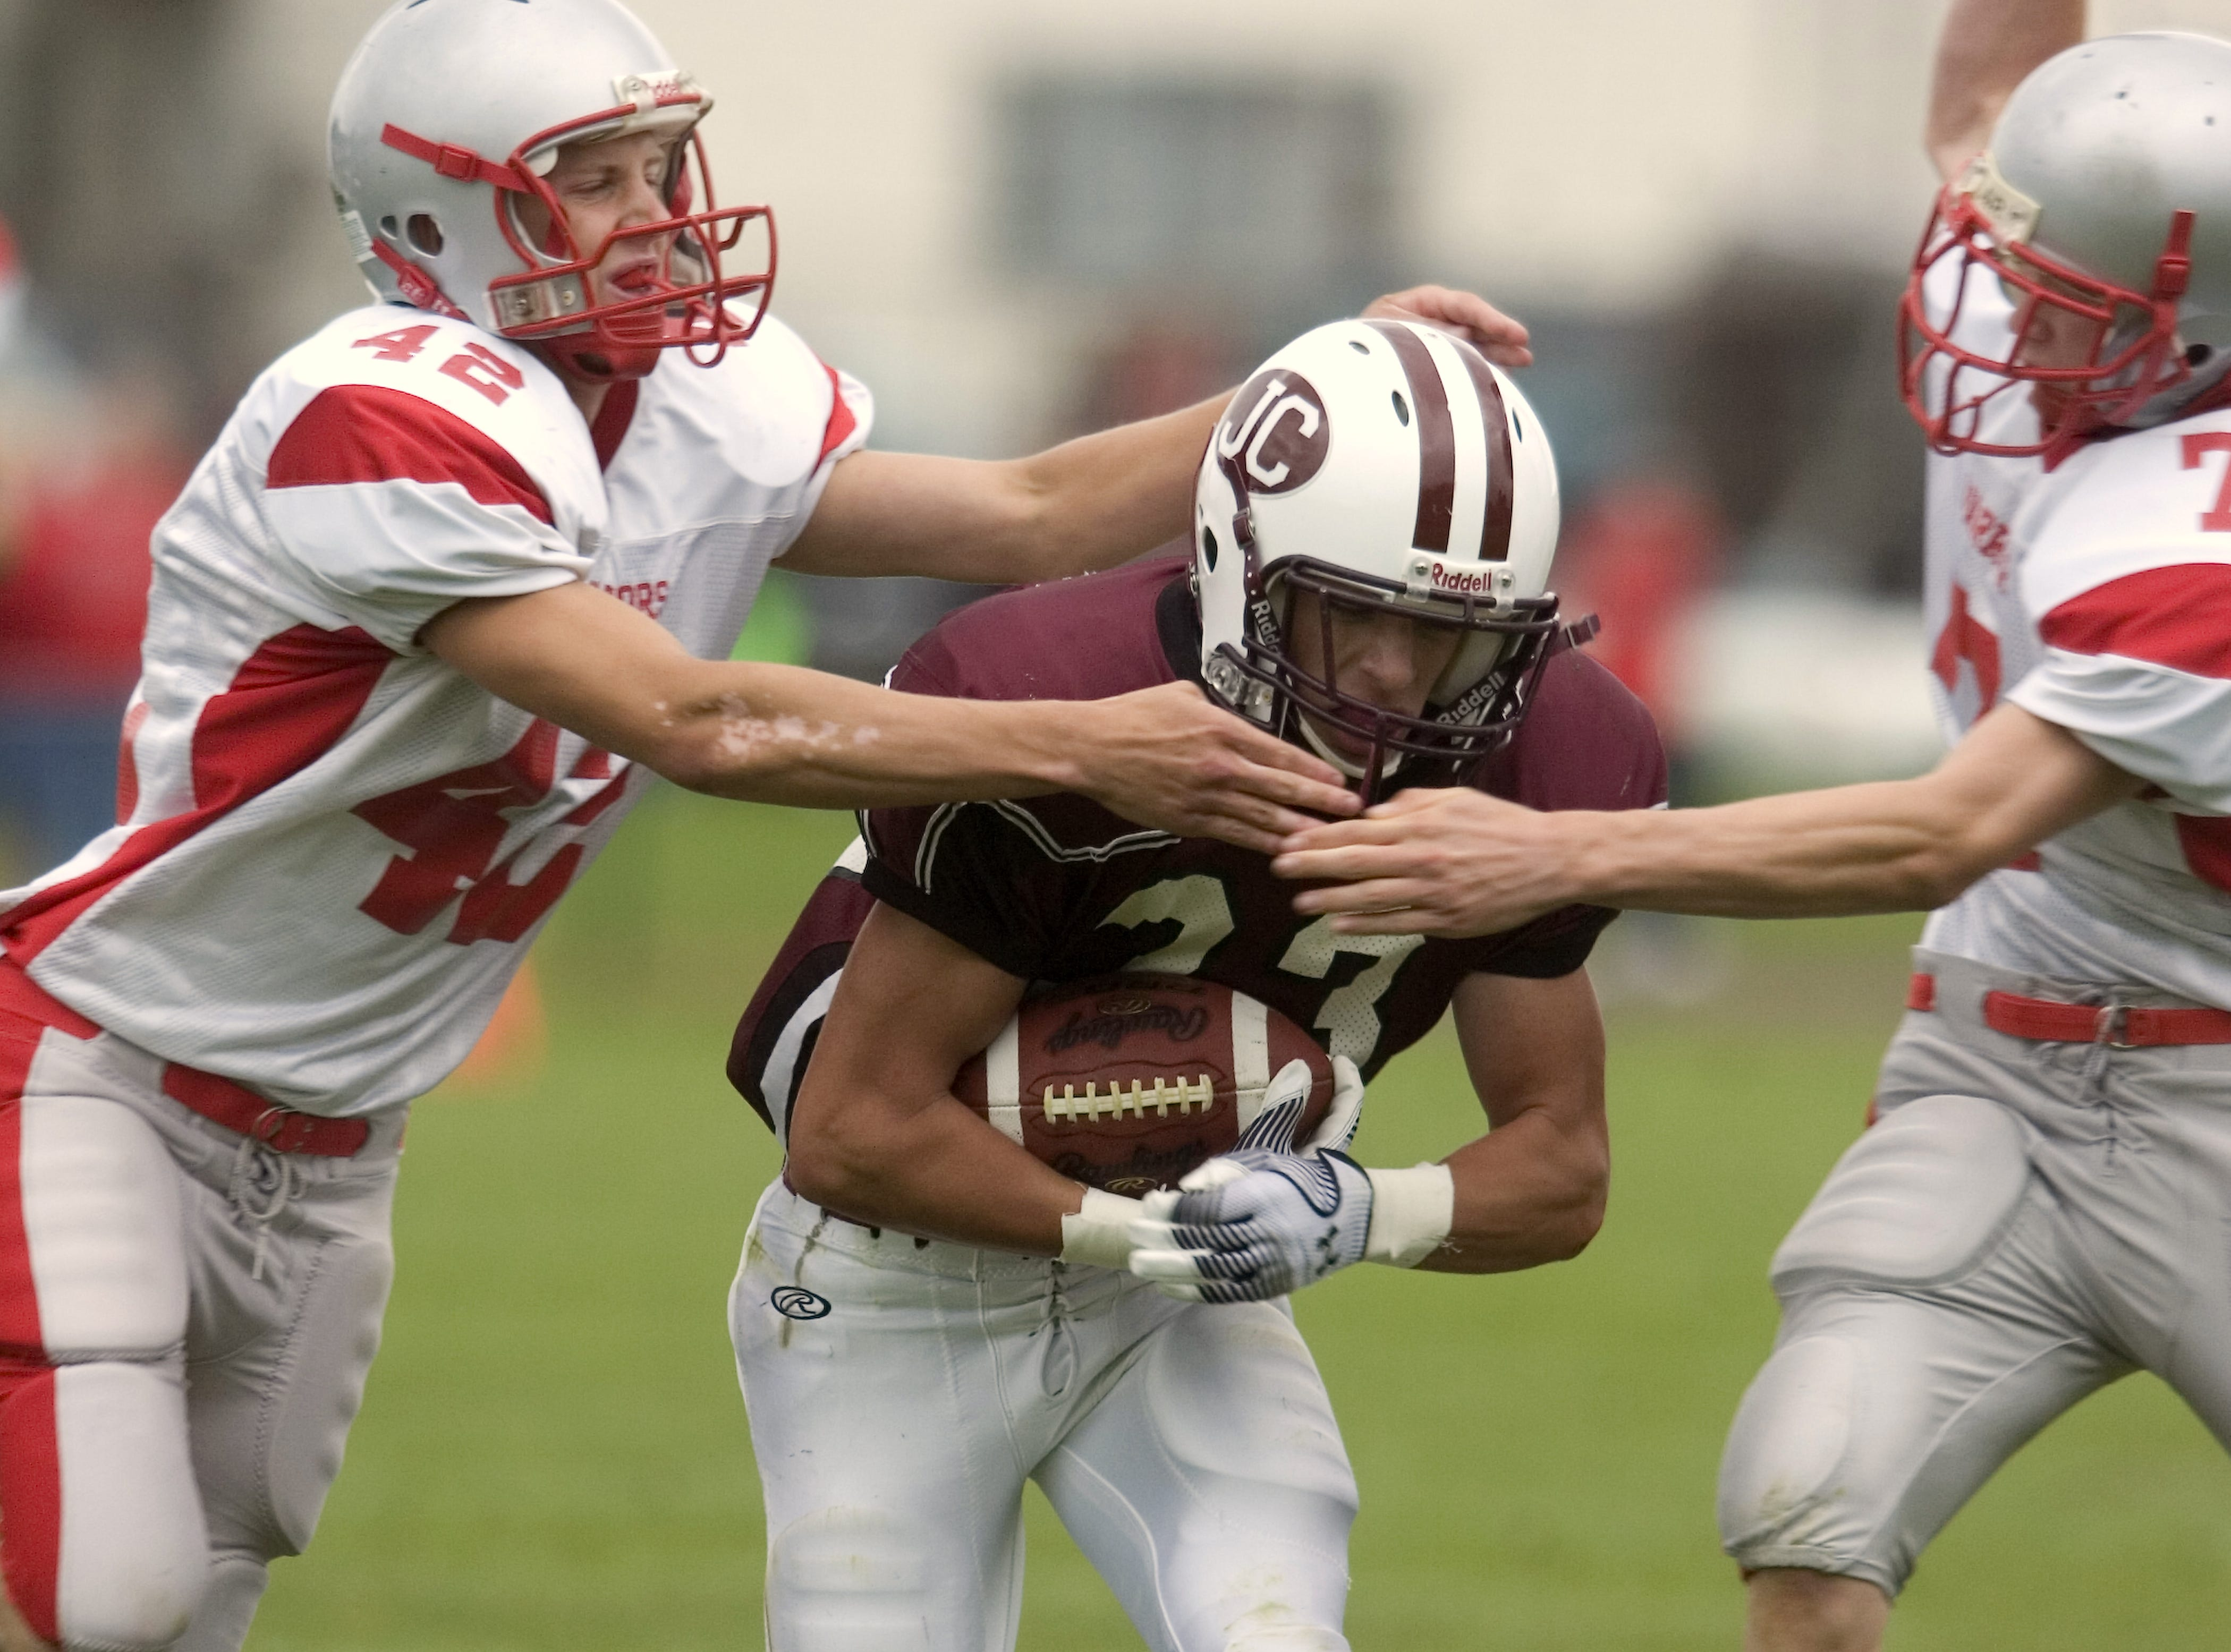 From 2009: Chenango Valley's Joe Bleil, left, and Conor Mahoney, right, team up to tackle Johnson City's Troy Robinson in the second quarter of Saturday's game at Green Field.